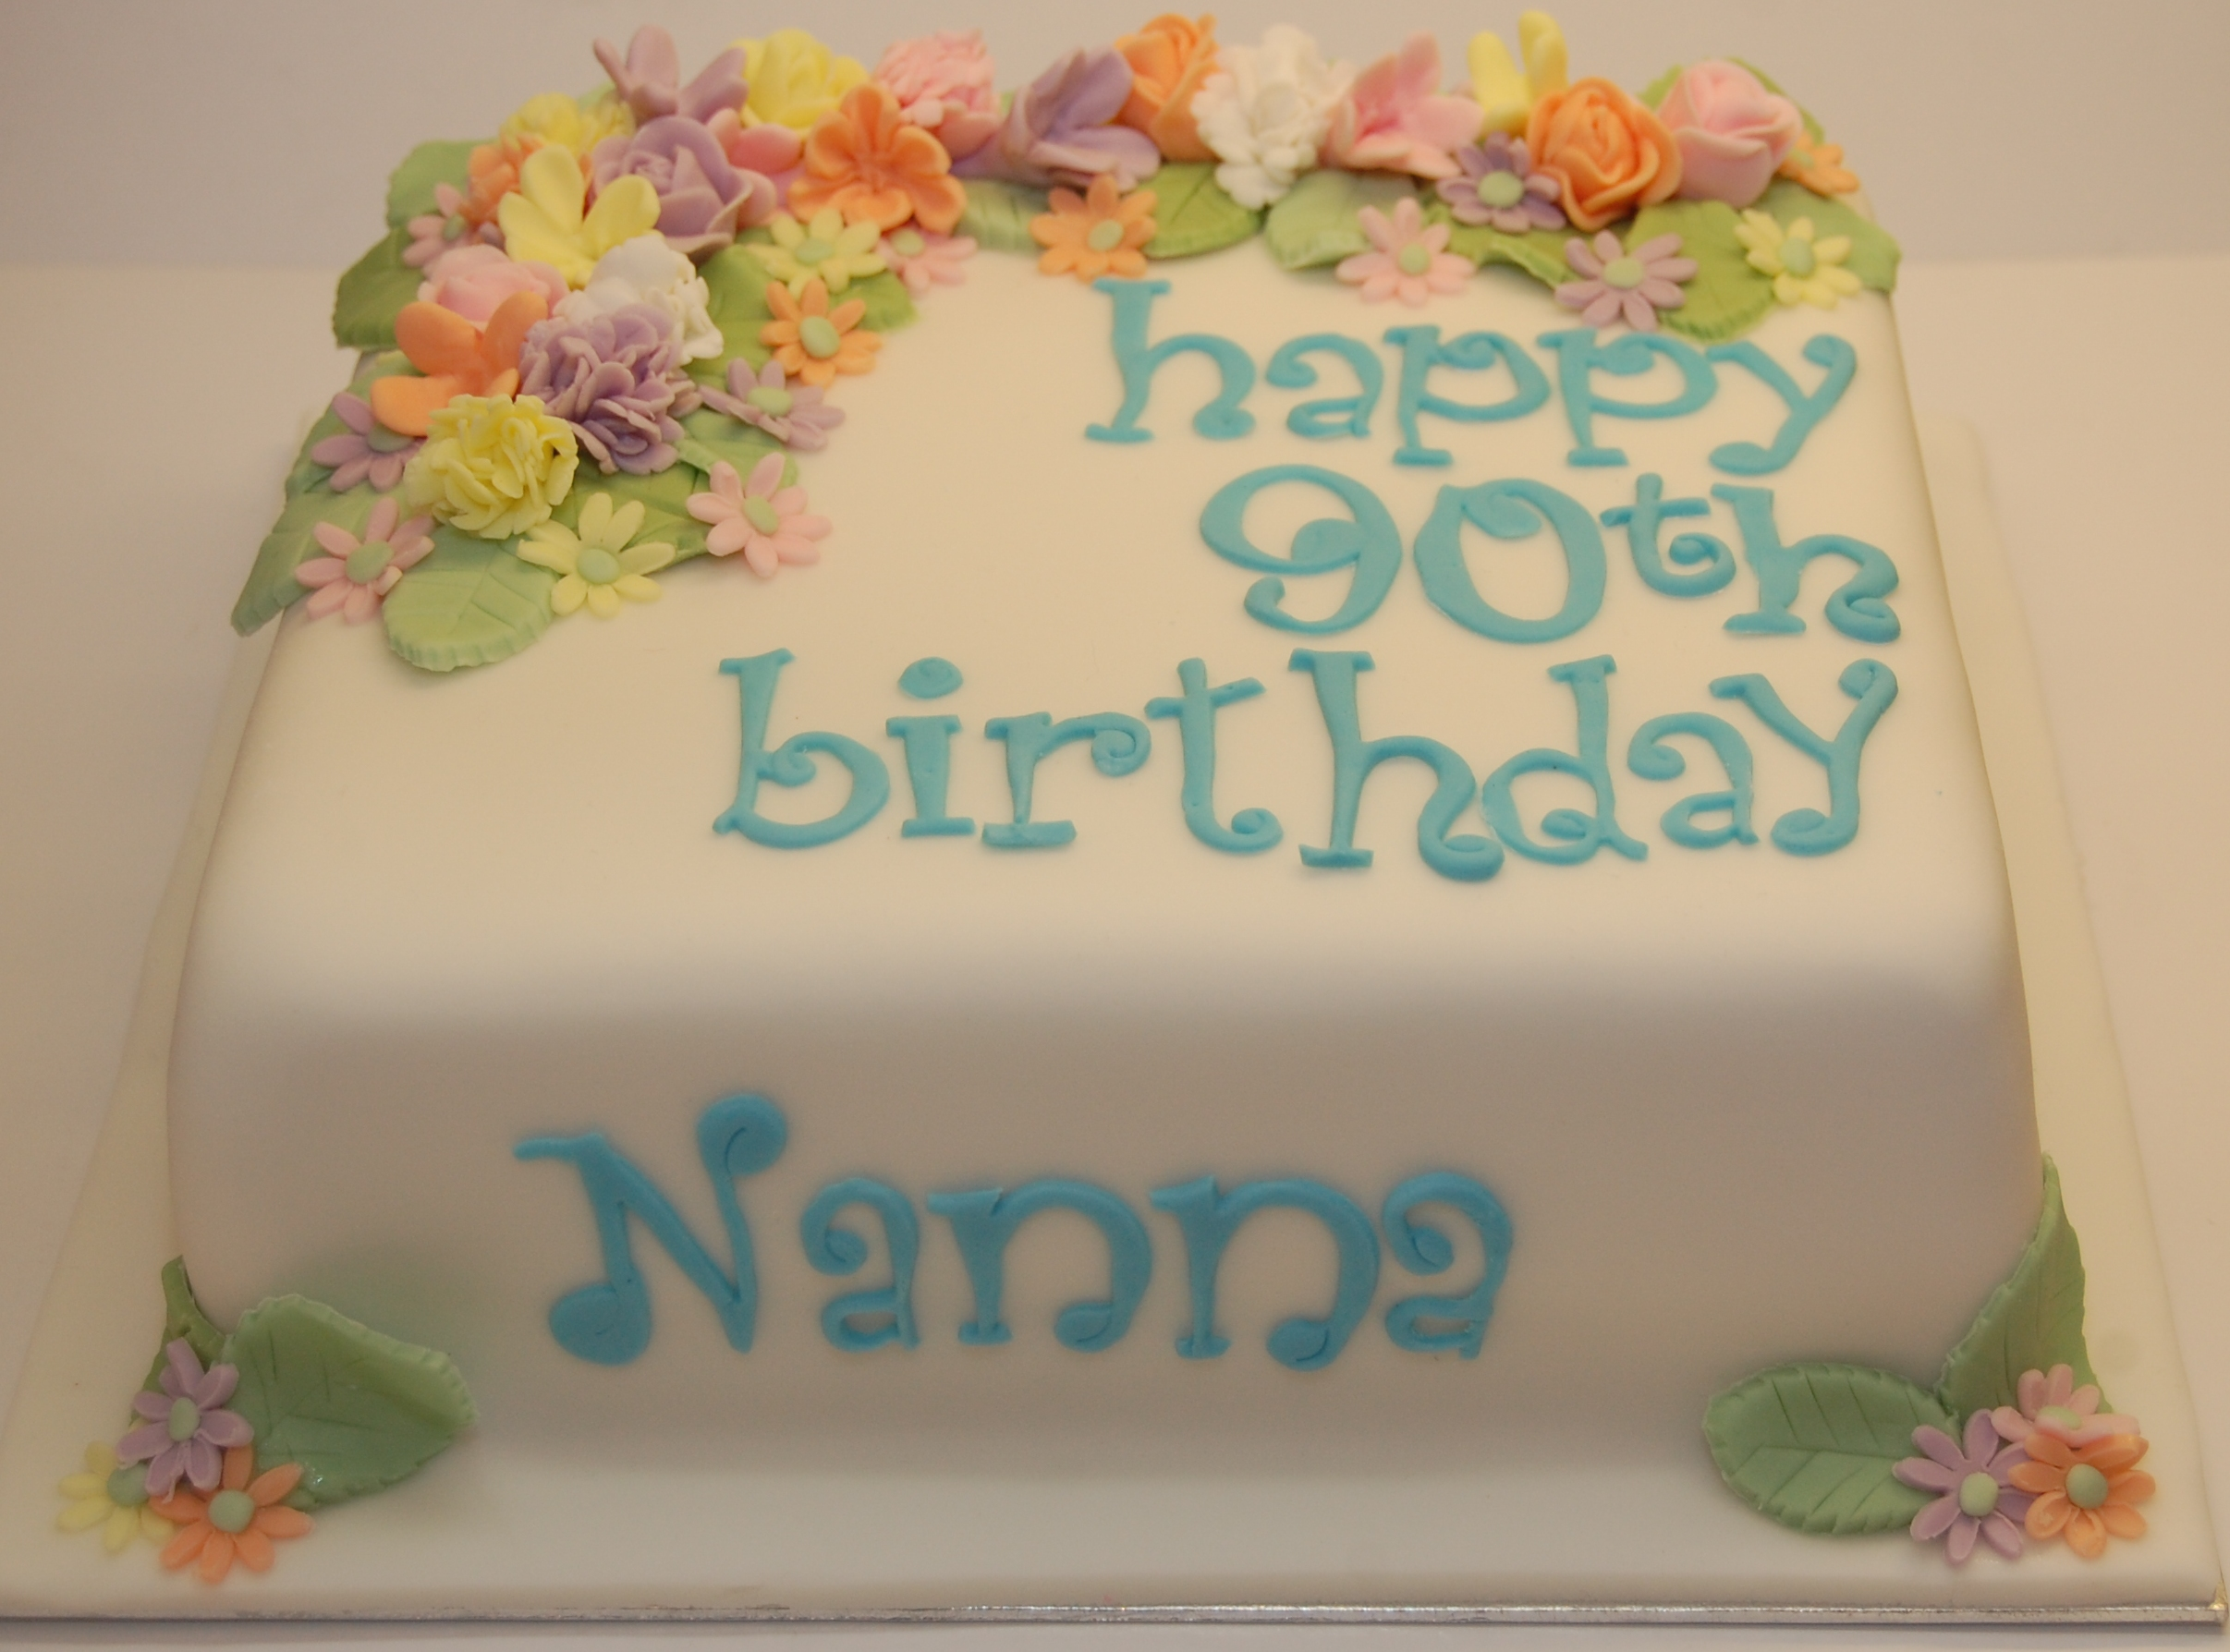 A very special cake to celebrate a very special 90th birthday happy birthday nan izmirmasajfo